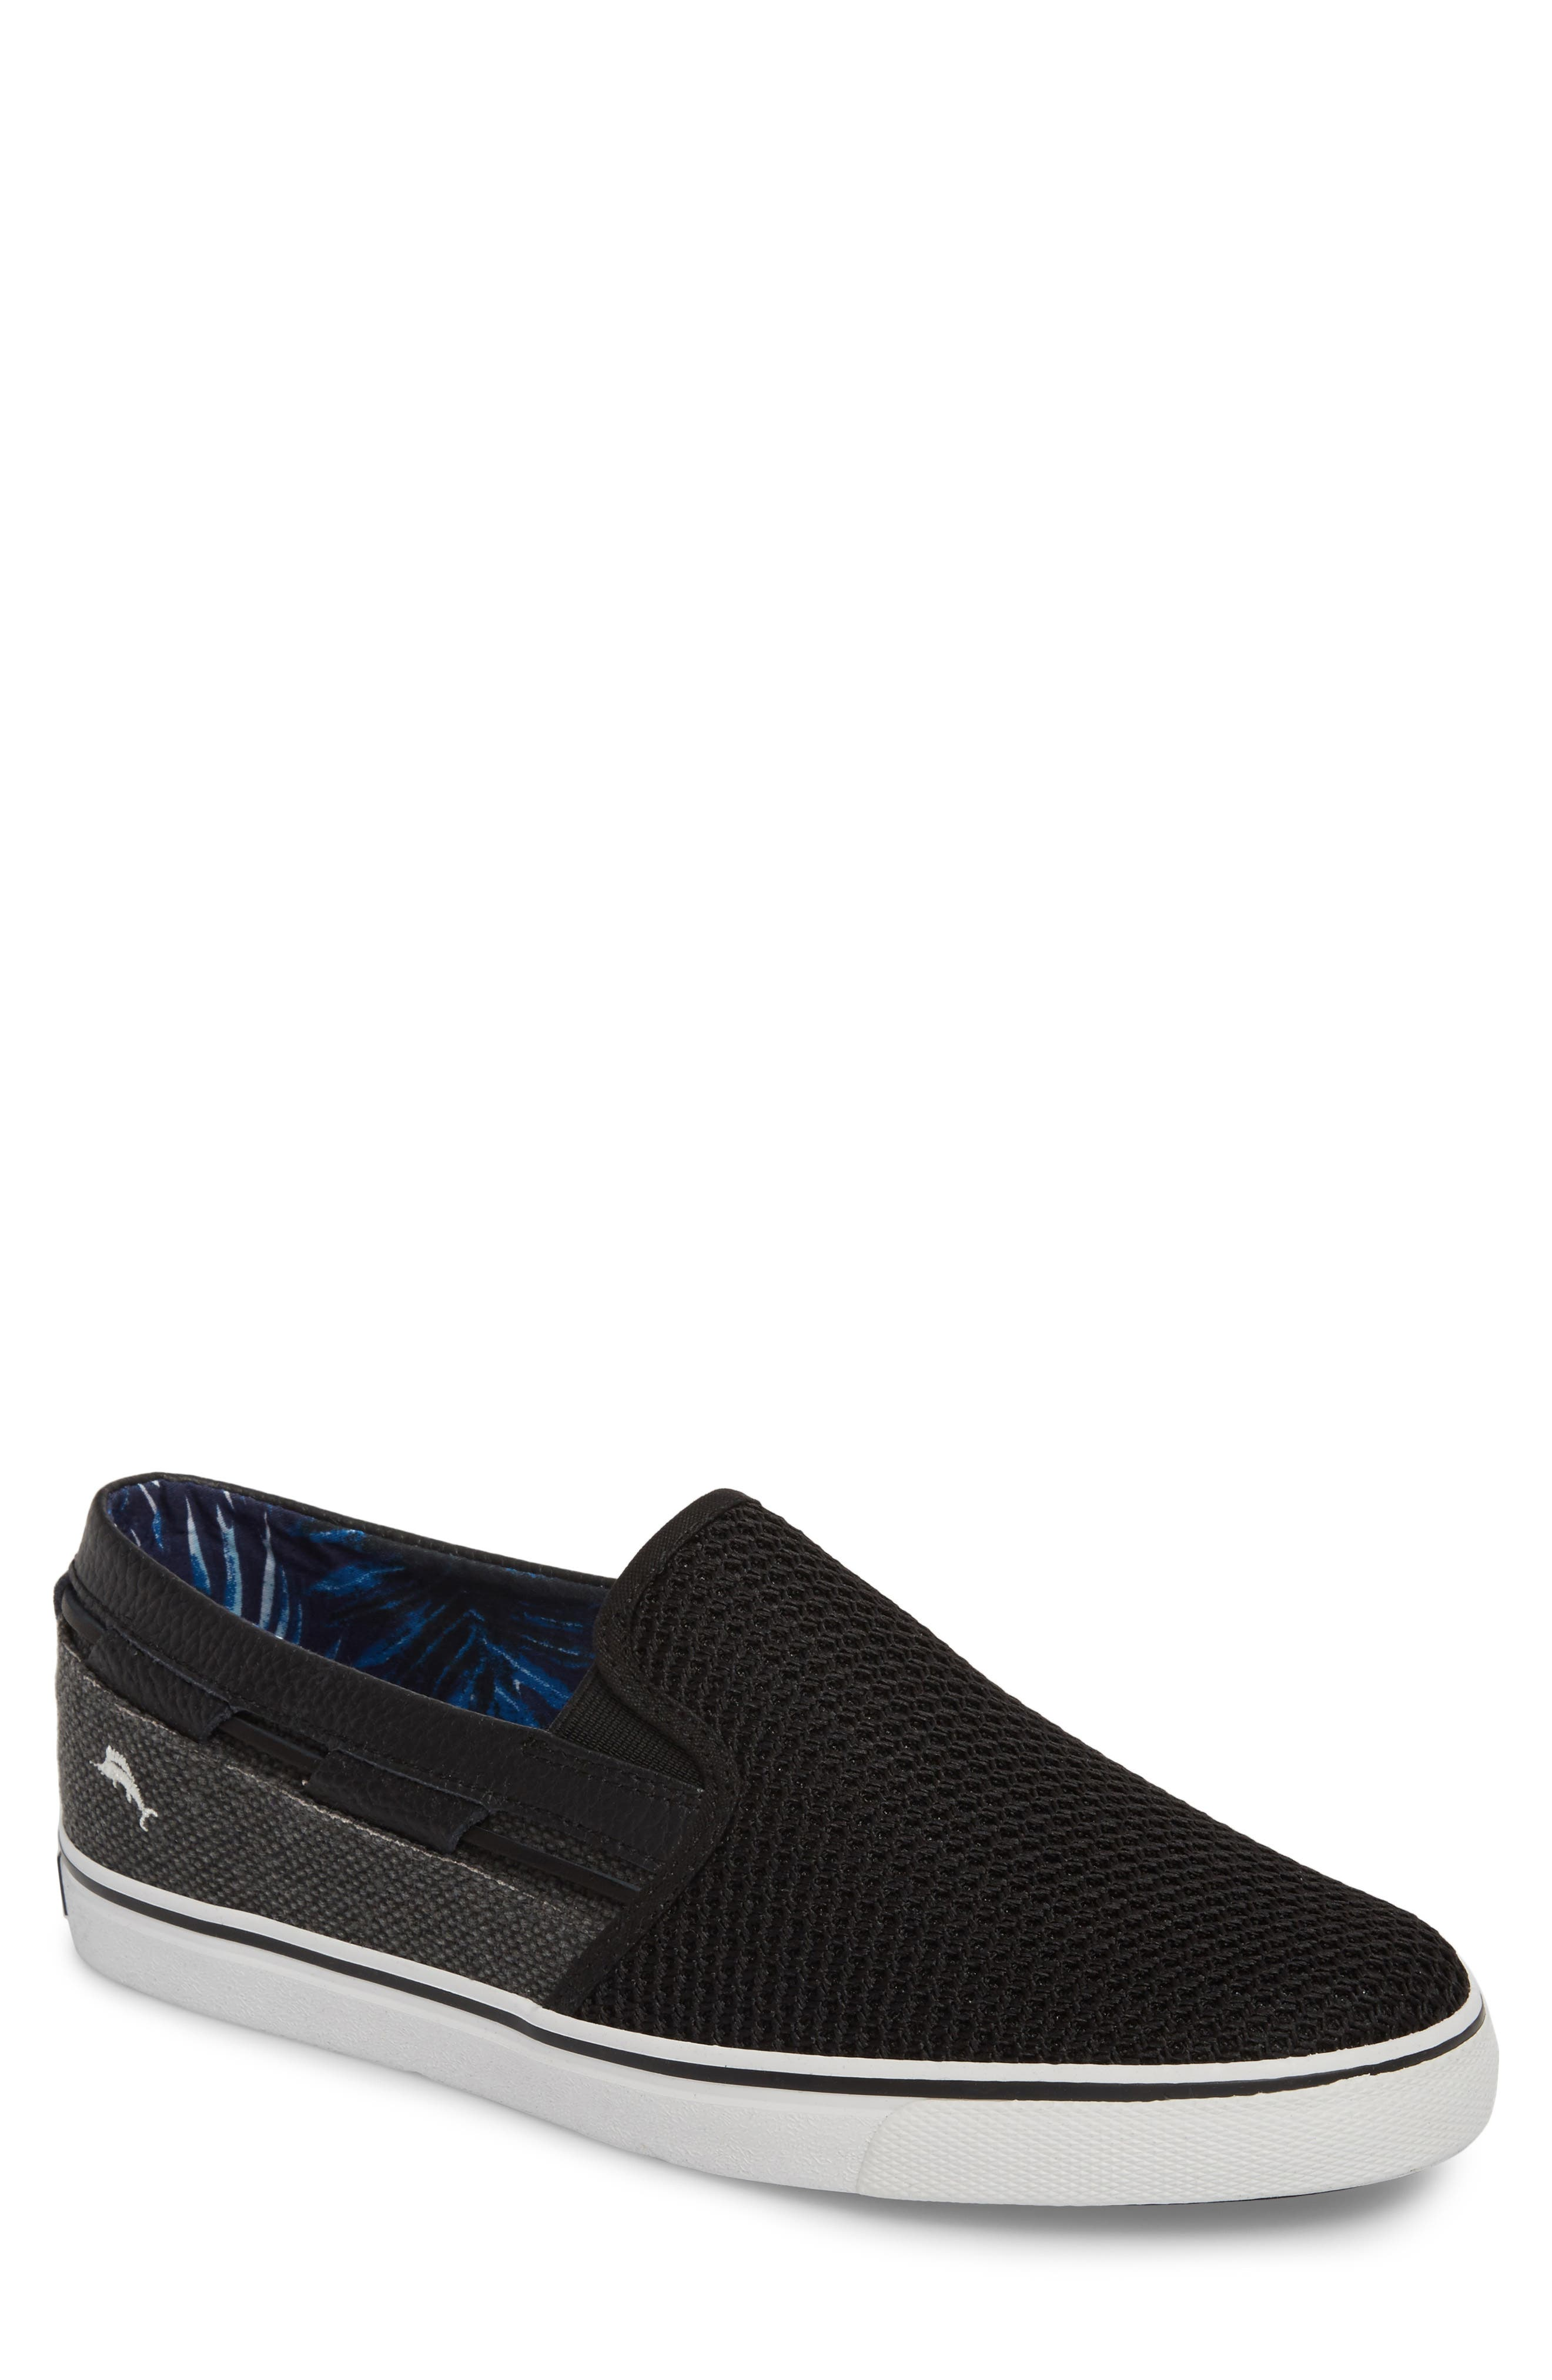 Exodus Mesh Slip-On Sneaker,                             Main thumbnail 1, color,                             BLACK MESH/ TEXTILE